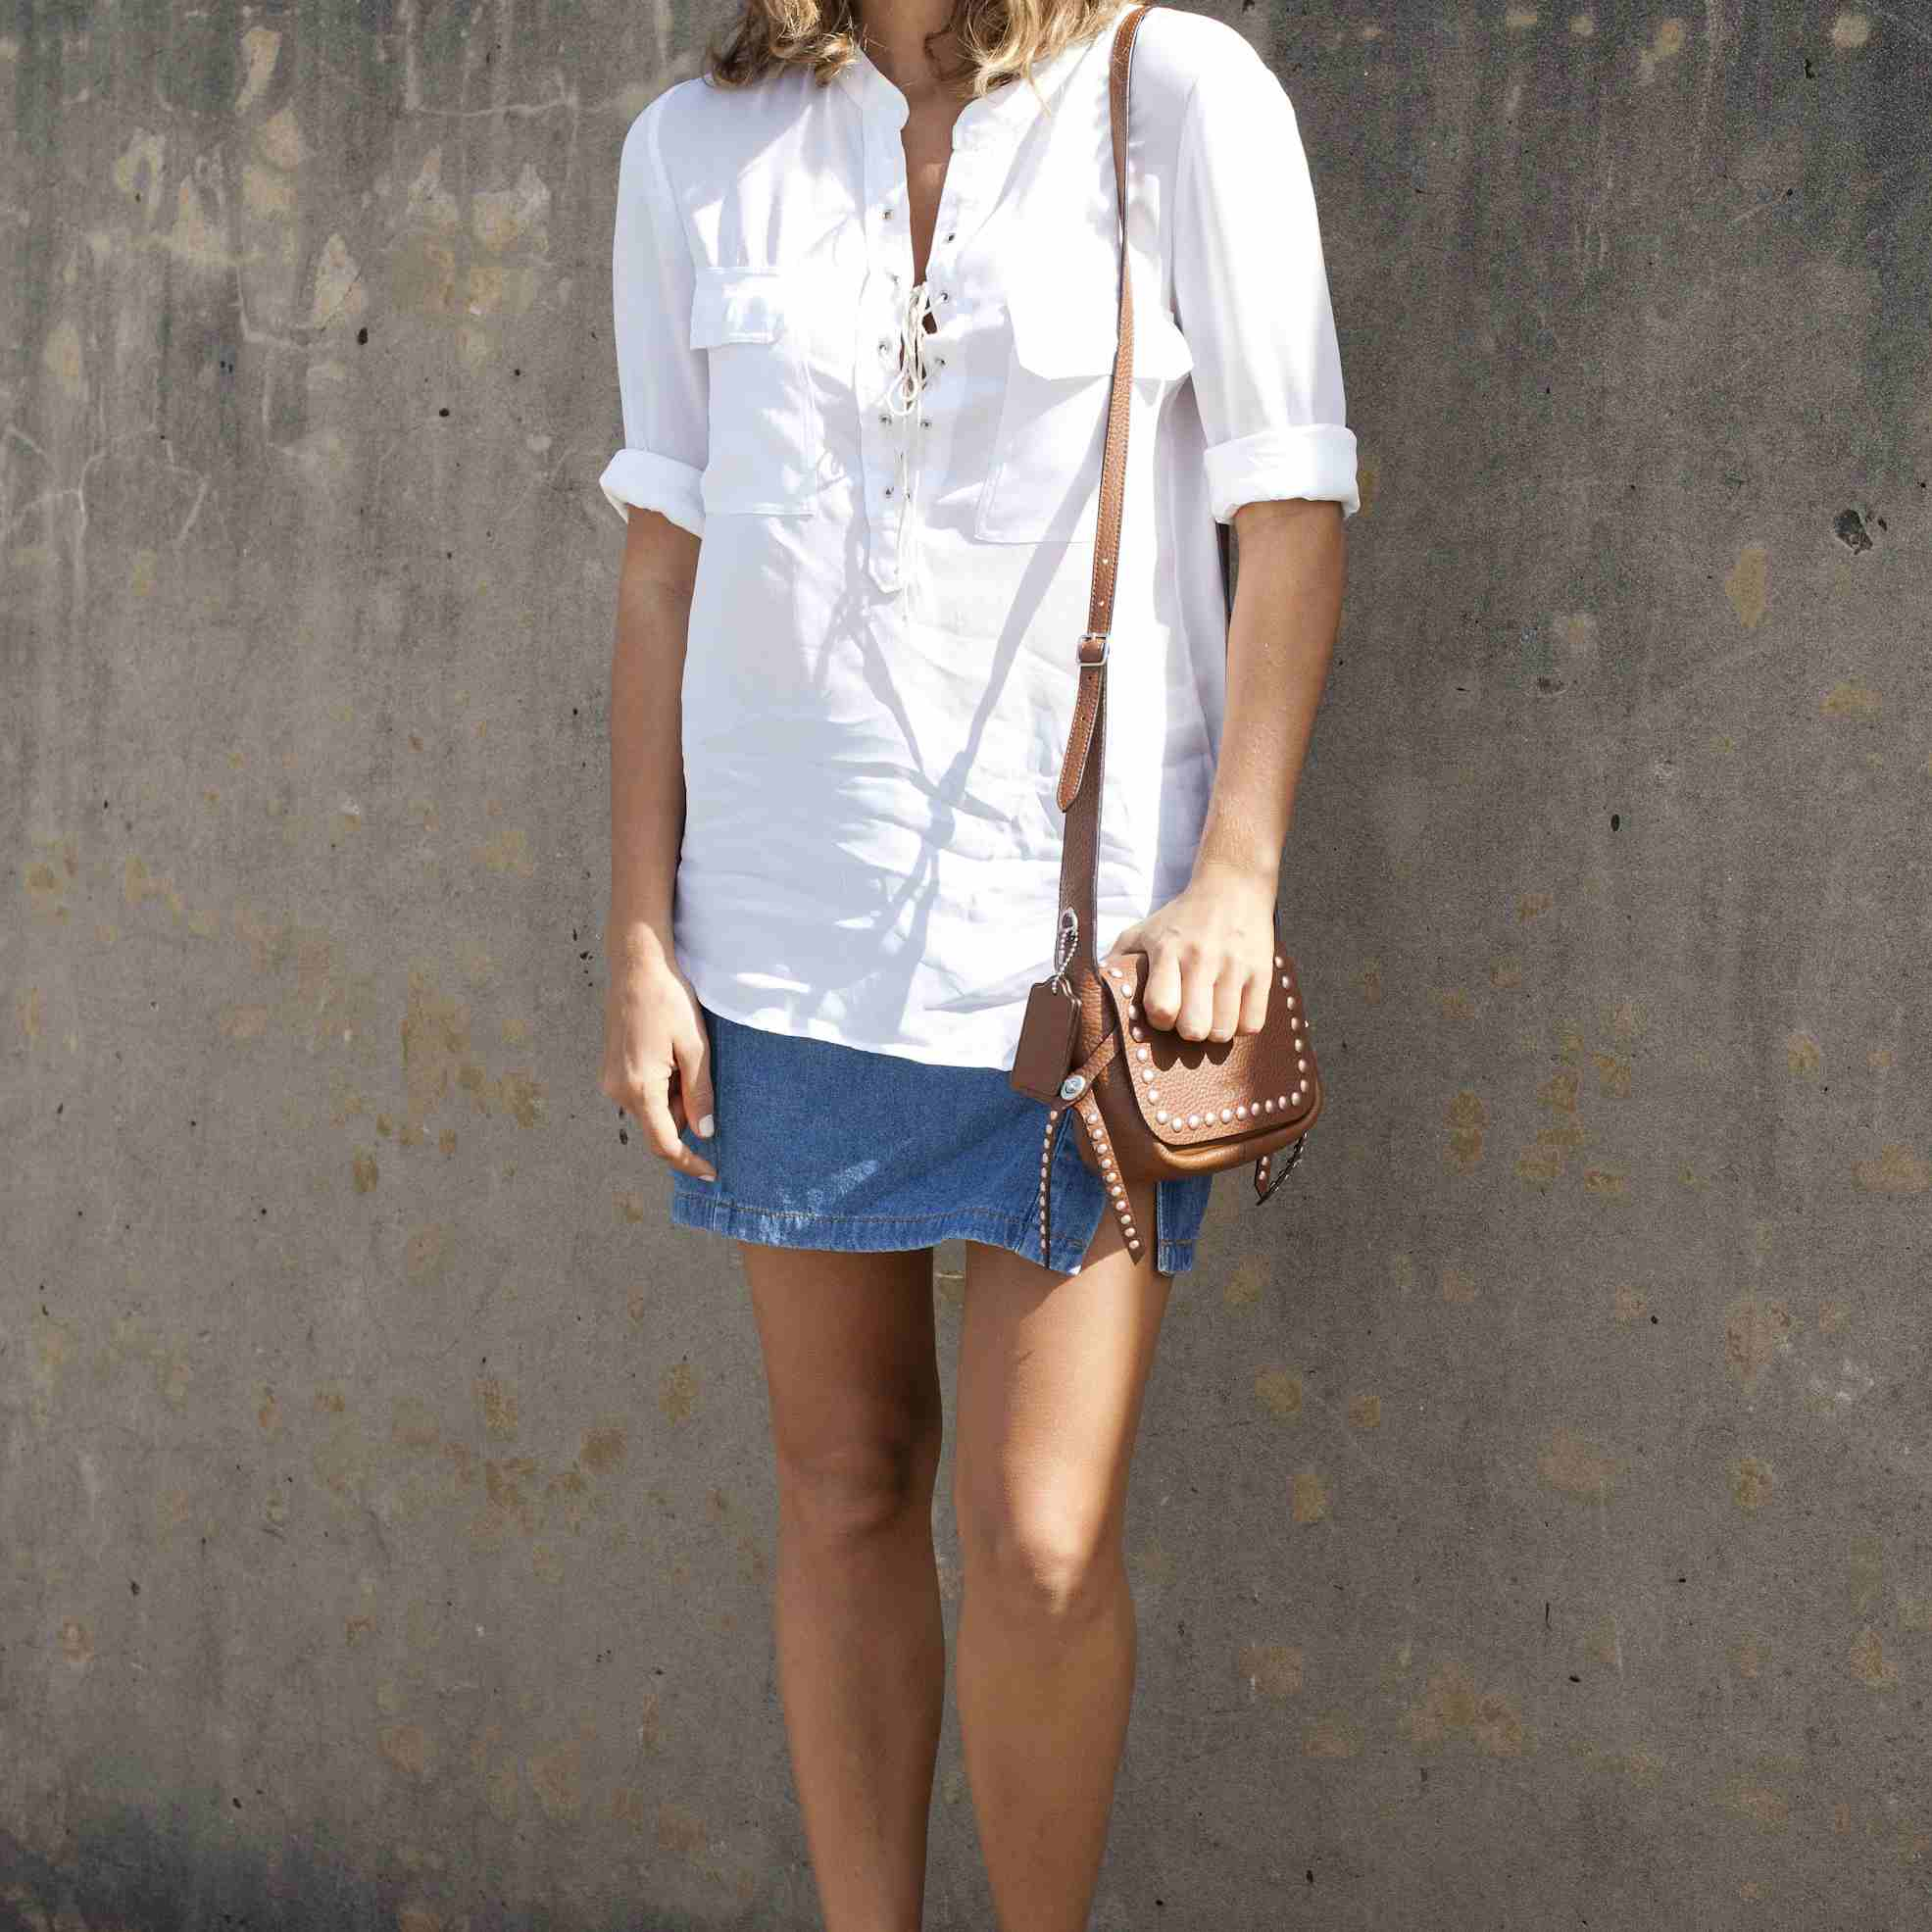 20261b0aa8 Jean Skirt Outfits: What to Wear With a Denim Skirt